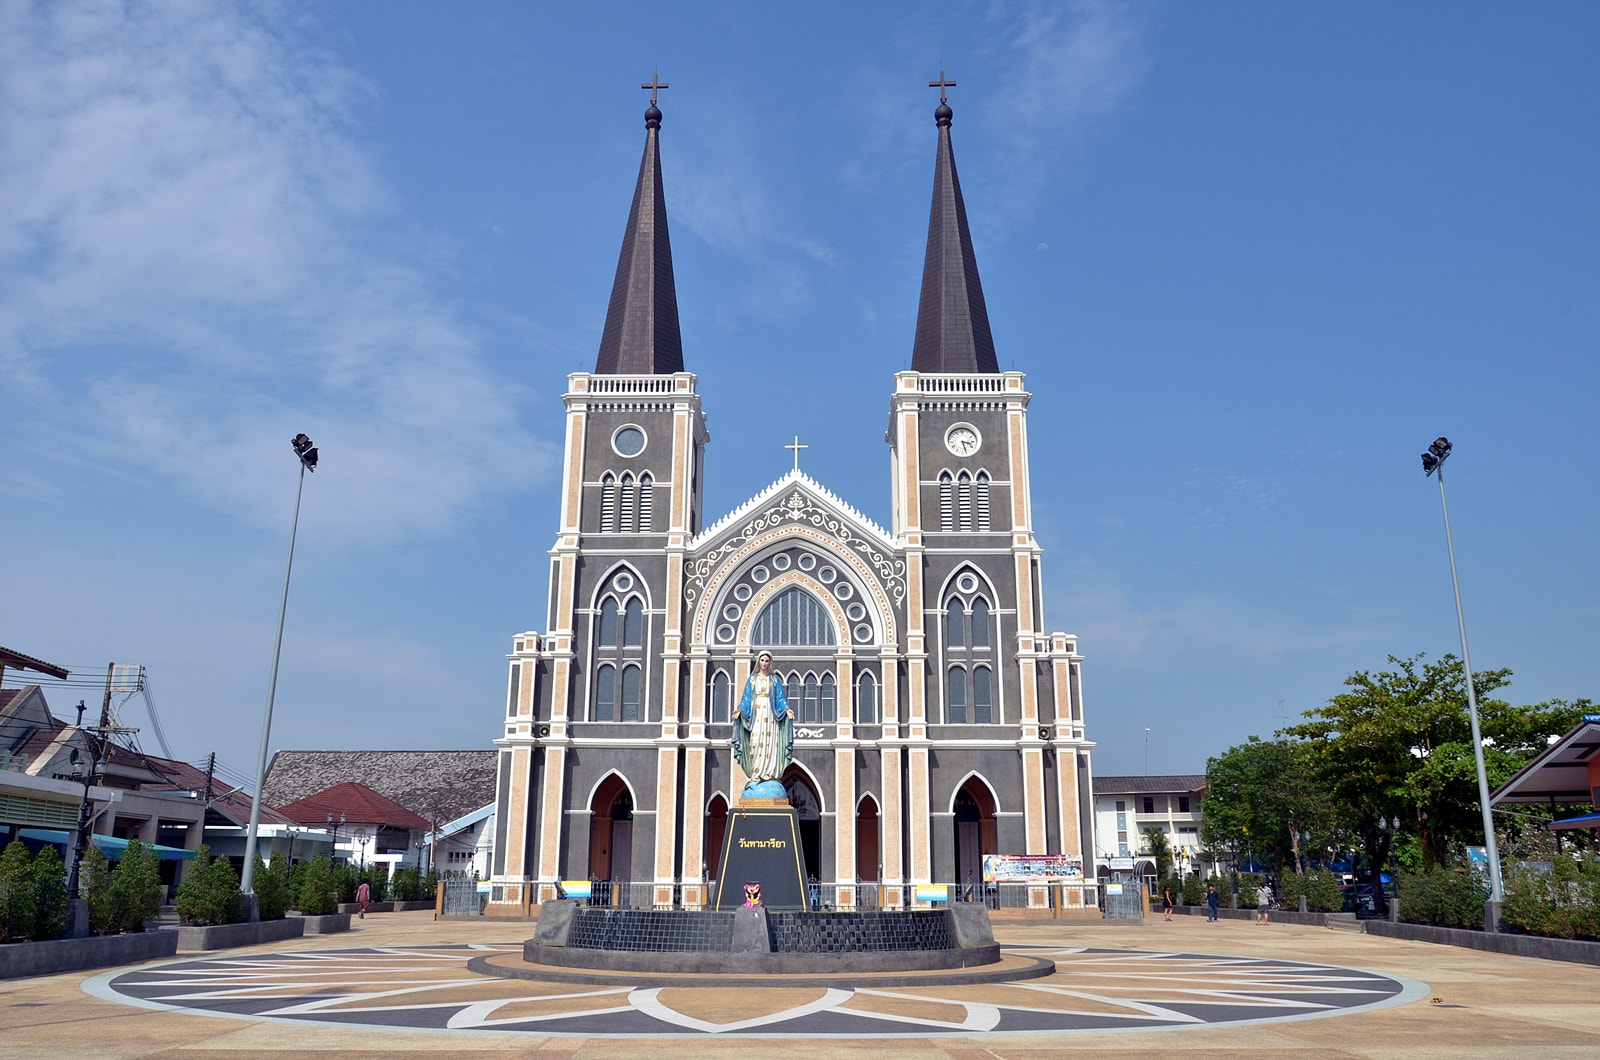 Photograph Church of Christ by Kunrapee Puangthong on 500px